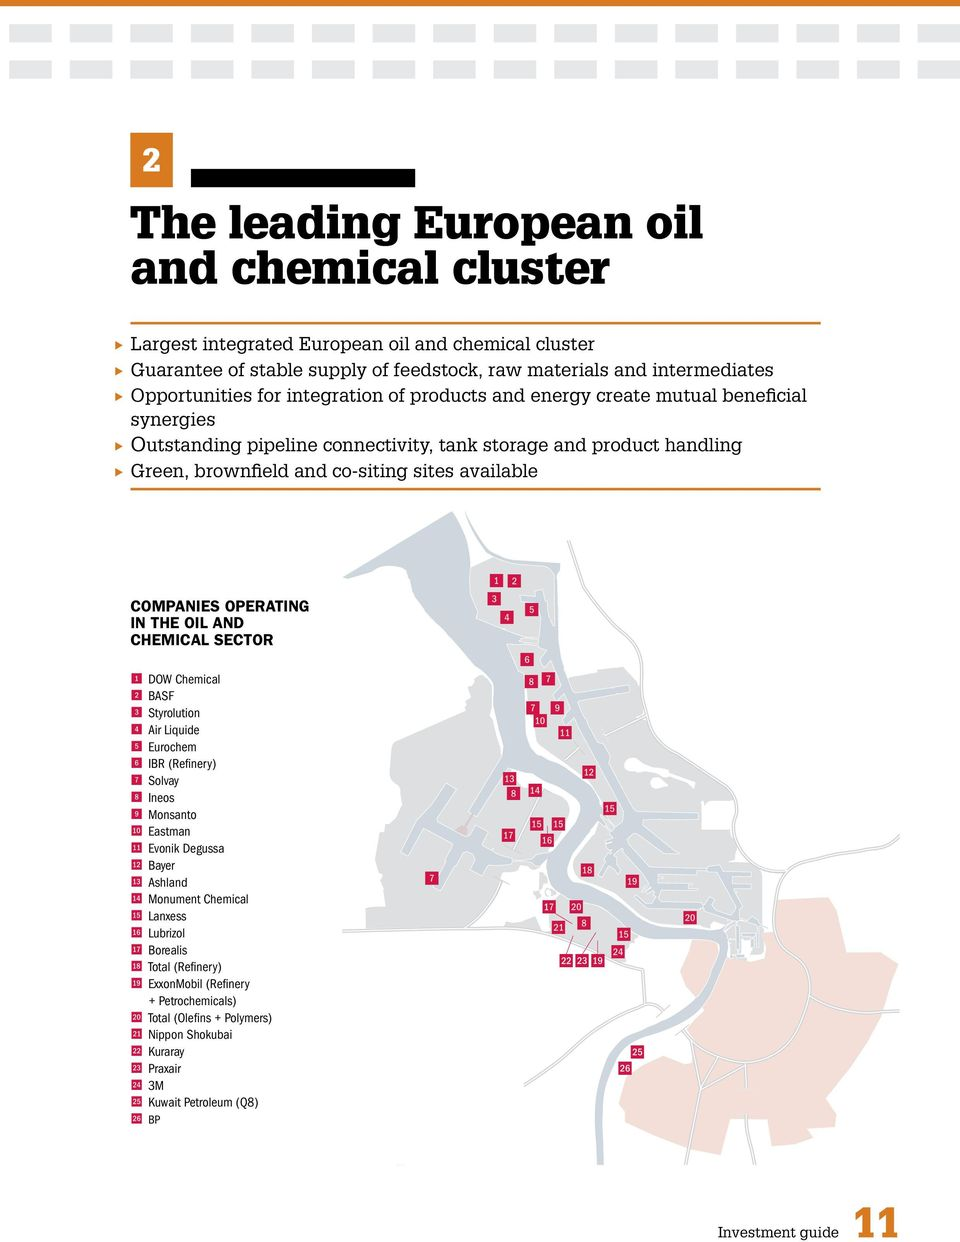 OPERATING IN THE OIL AND CHEMICAL SECTOR 1 DOW Chemical 2 BASF 3 Styrolution 4 Air Liquide 5 Eurochem 6 IBR (Refinery) 7 Solvay 8 Ineos 9 Monsanto A Eastman B Evonik Degussa C Bayer D Ashland E